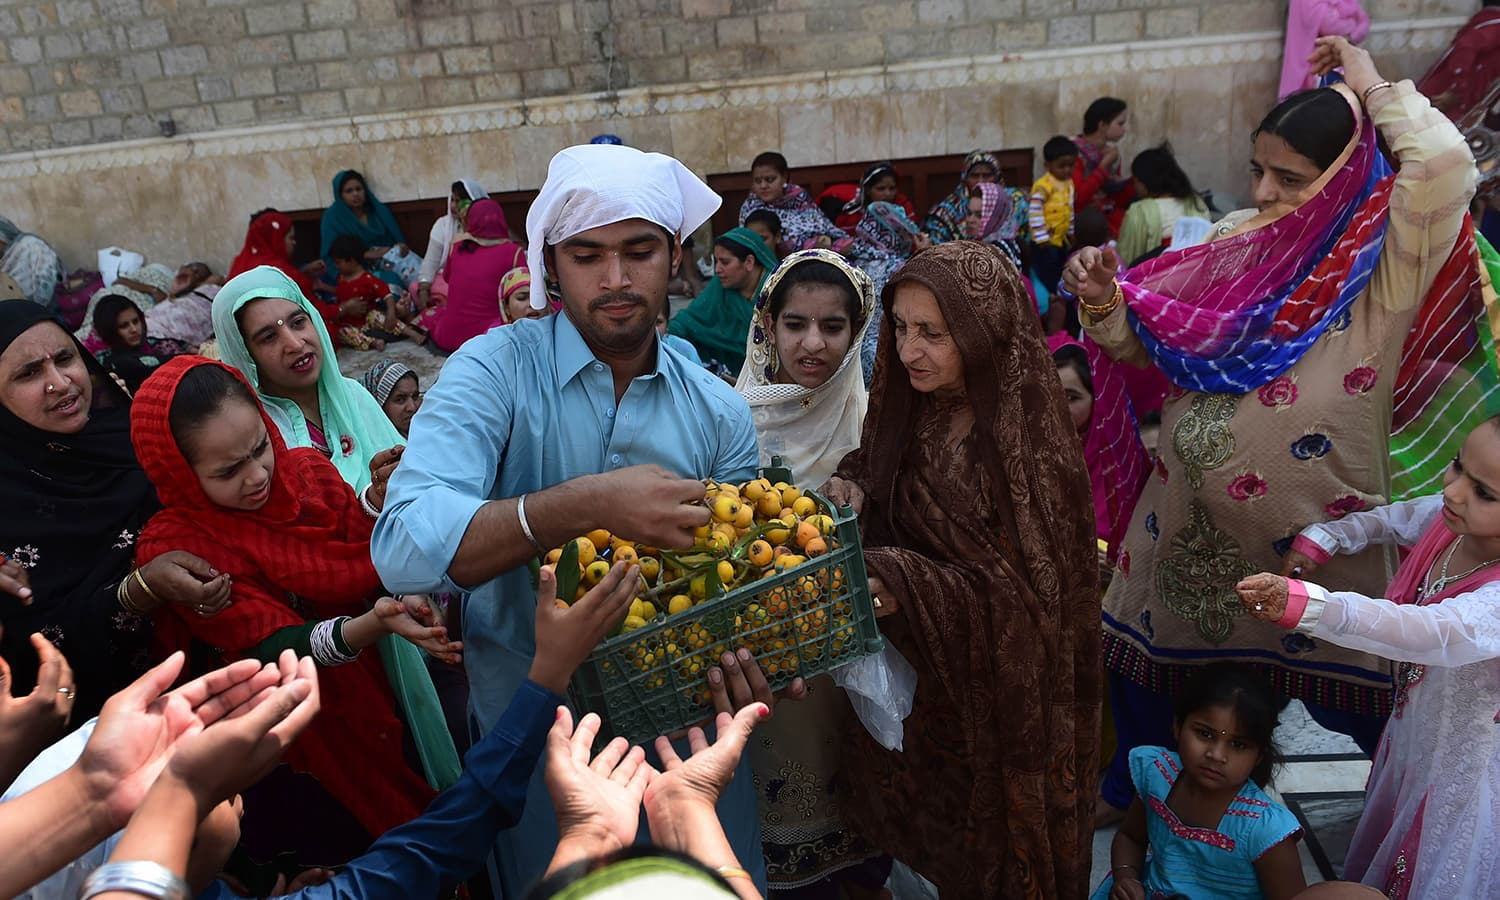 A man distributes loquat fruit to pilgrims.— AFP